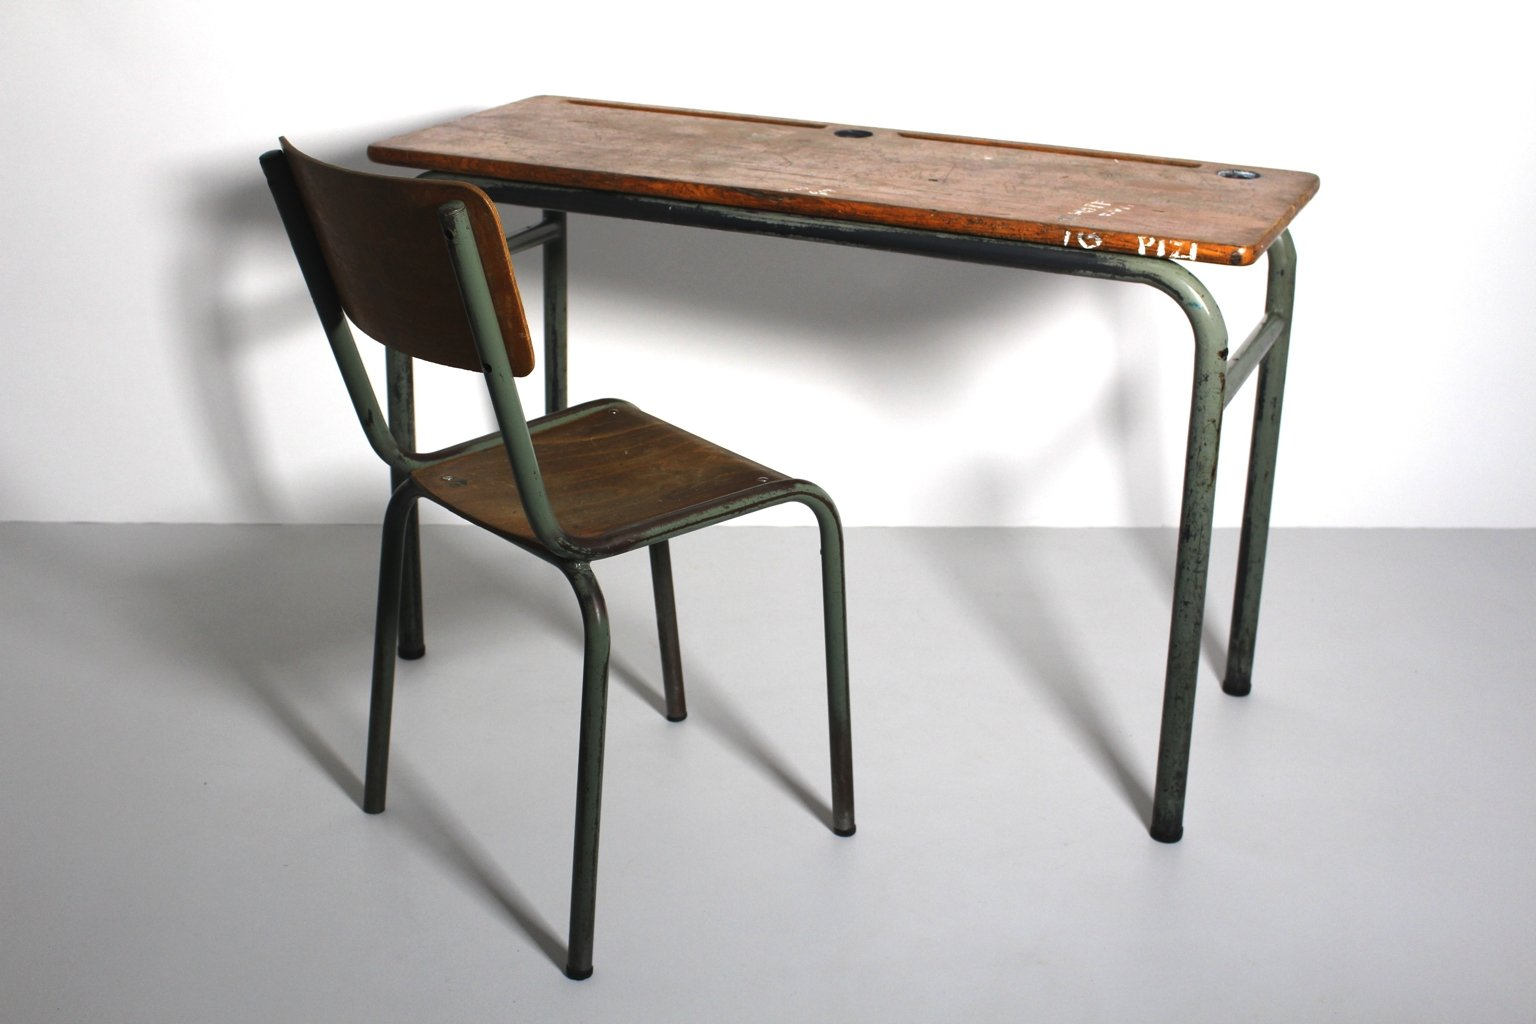 Vintage Industrial Style Desk and Chair 1940s Set of 2 for sale